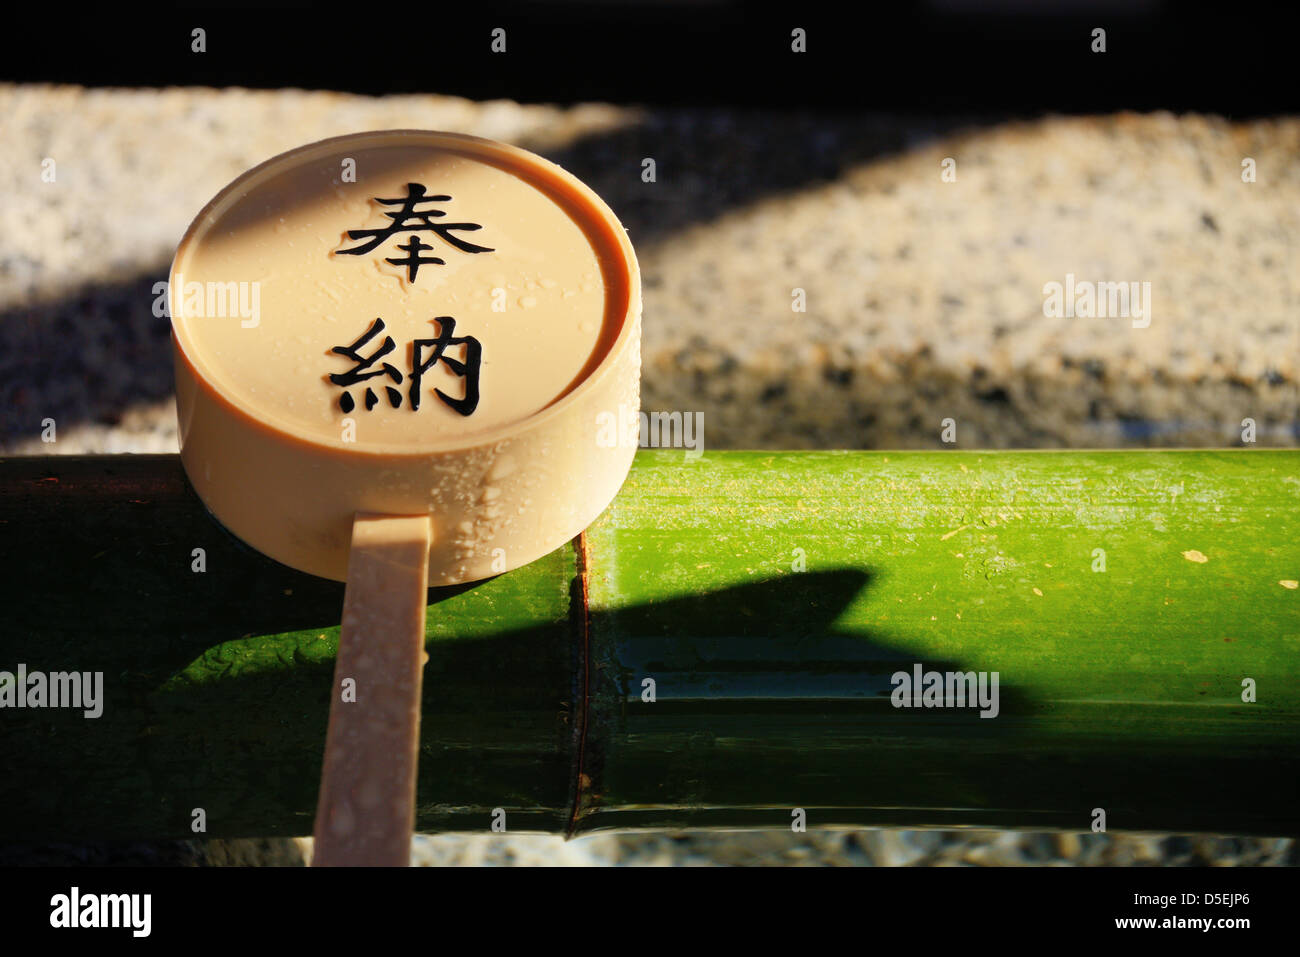 Scoop set atop a ritualistic tsukubai hand-washing basin with Japanese Kanji charachters reading 'dedication.' - Stock Image